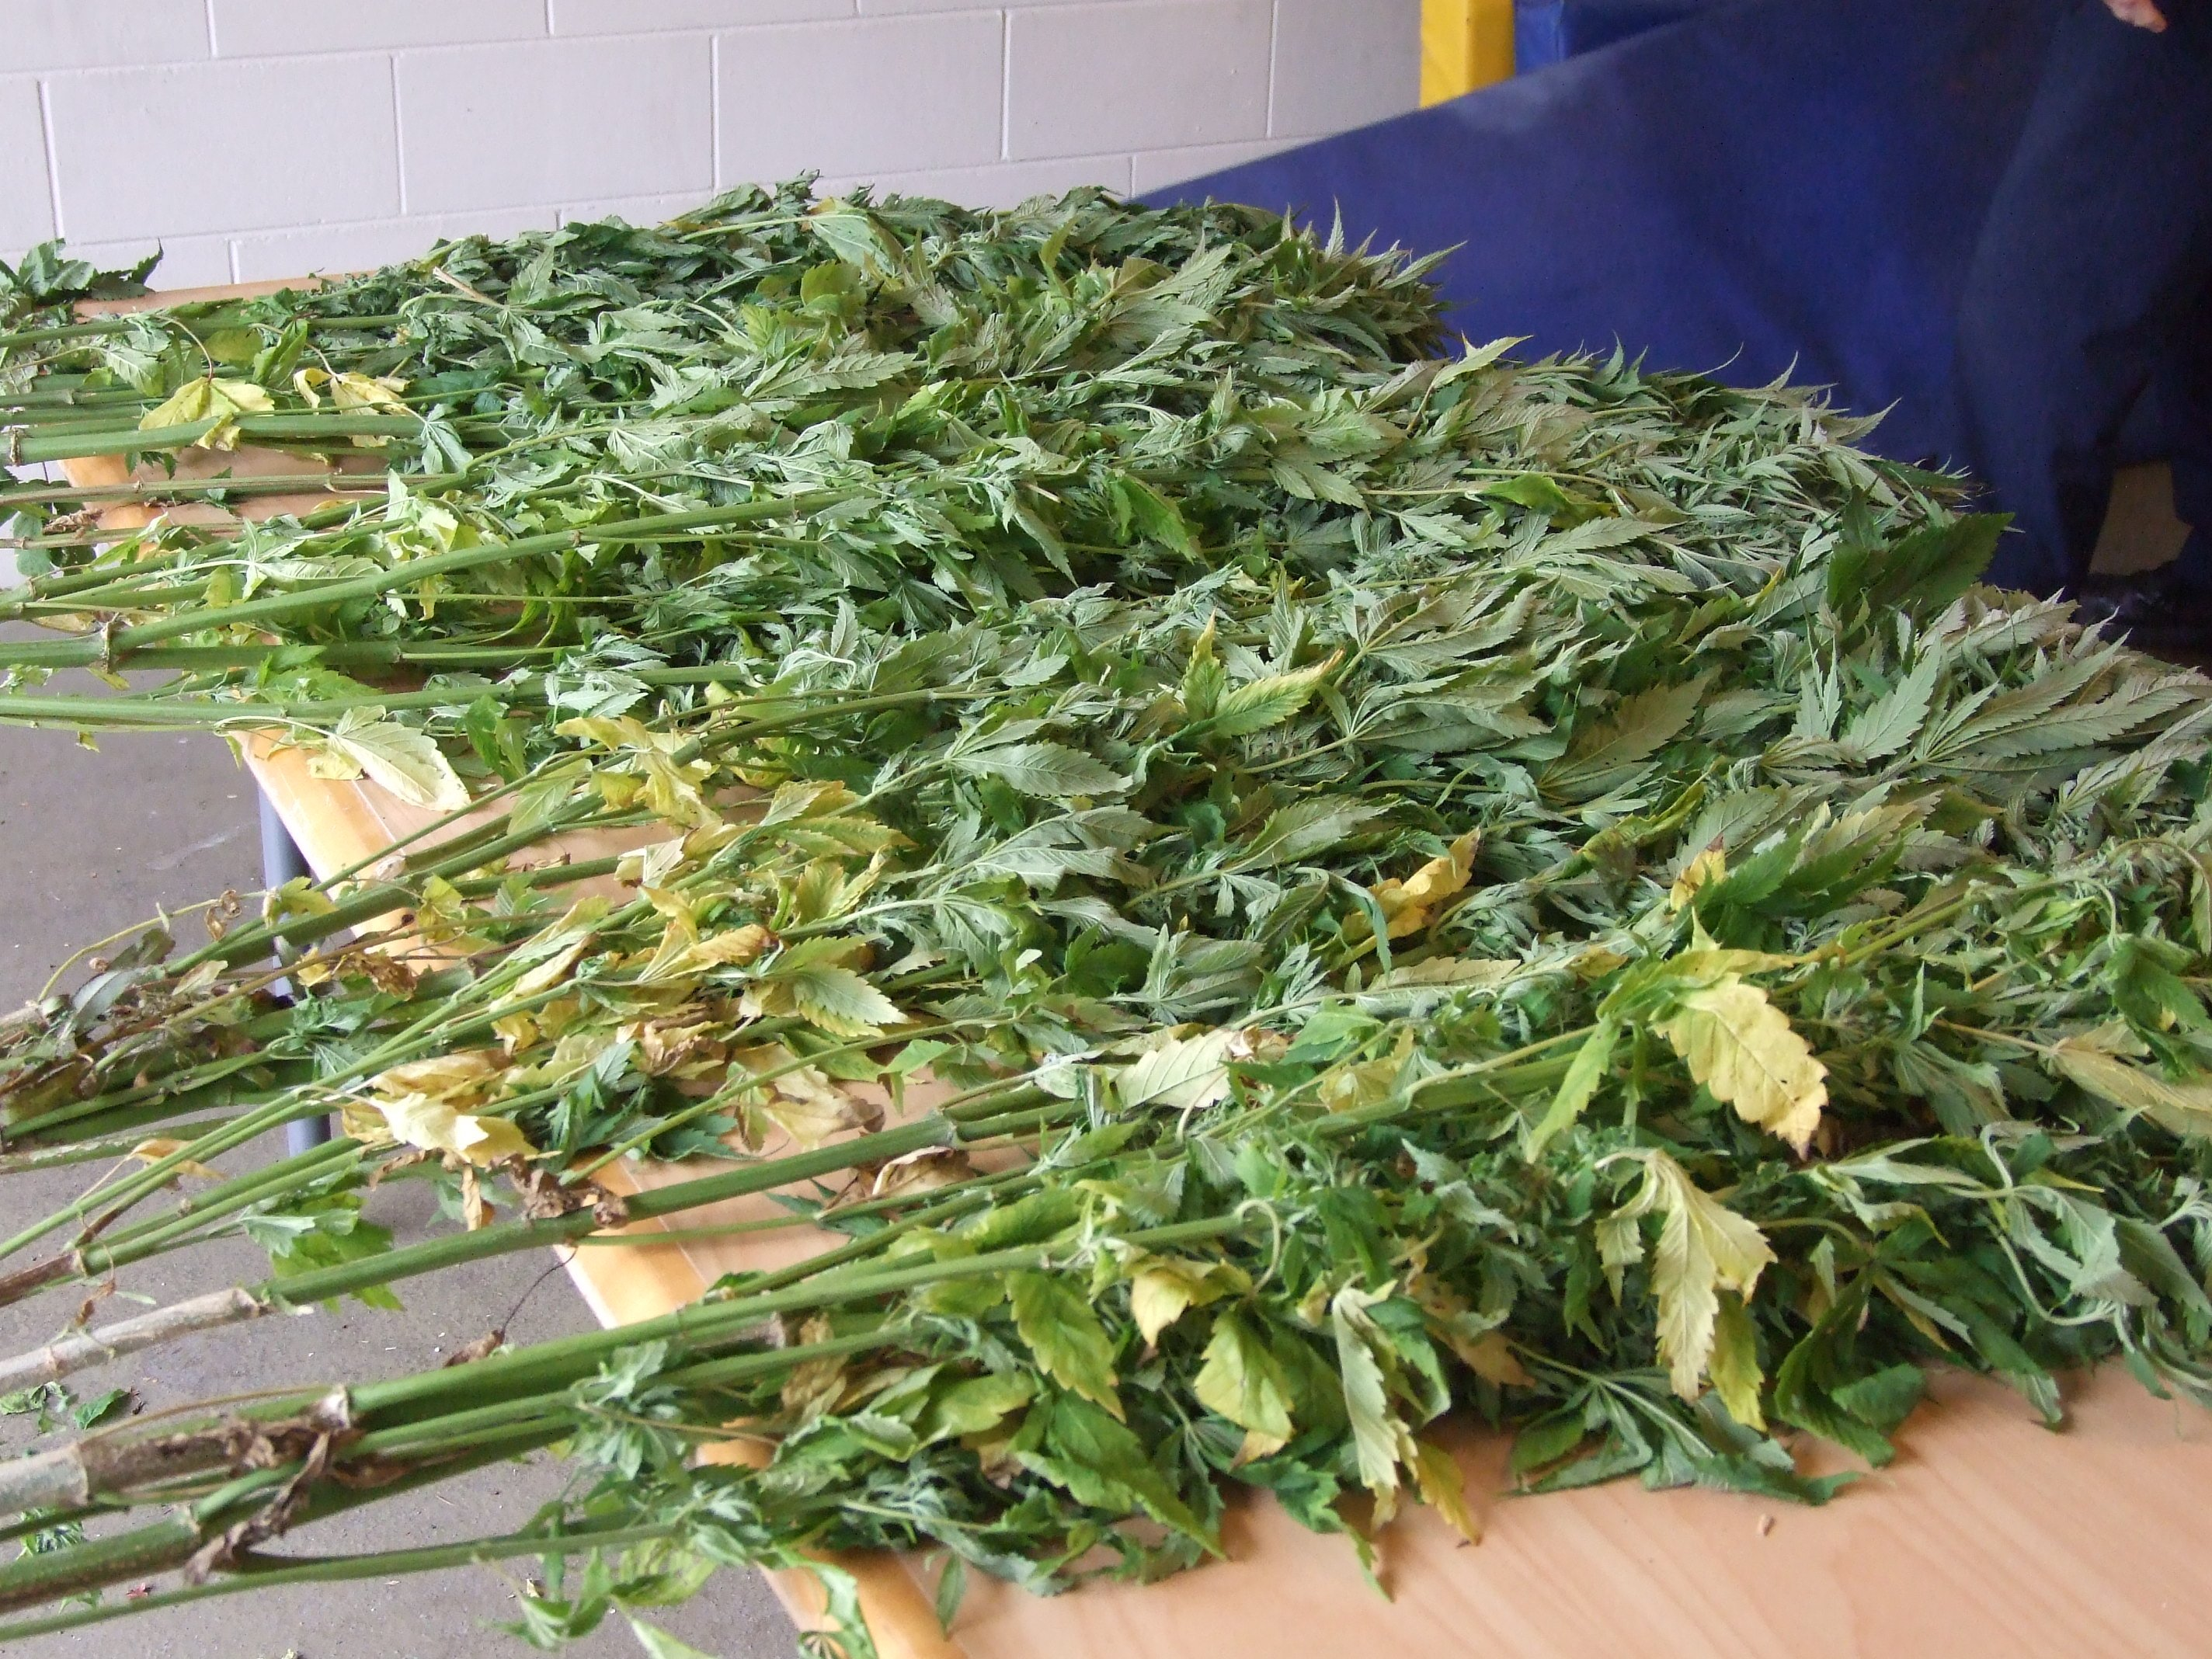 Booby-trapped cannabis plot discovered